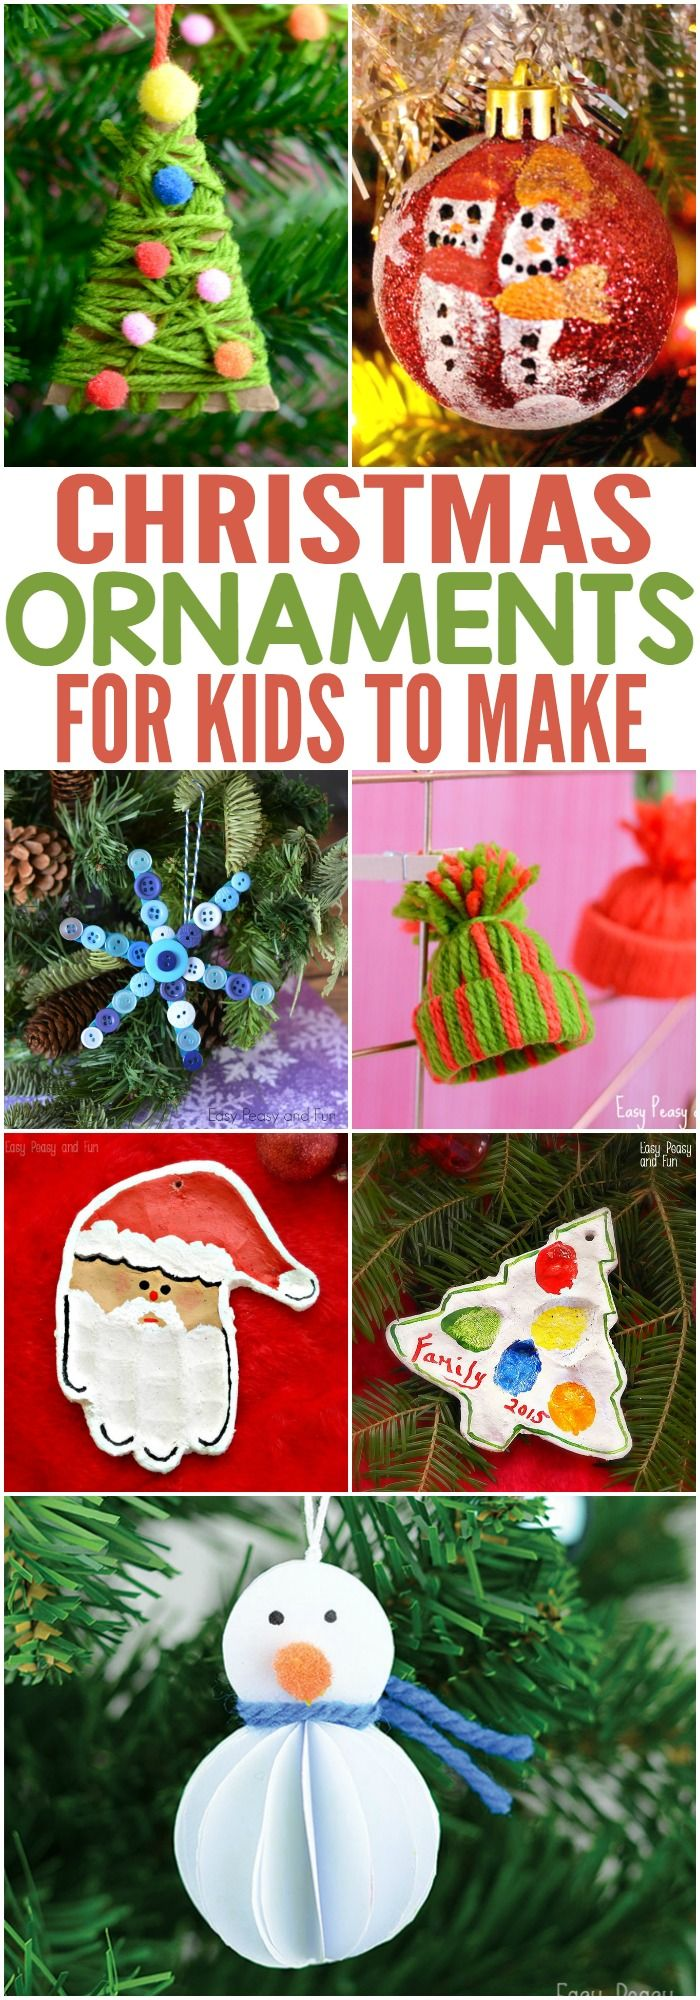 Christmas Ornaments for Kids to Make - more at megacutie.co.uk